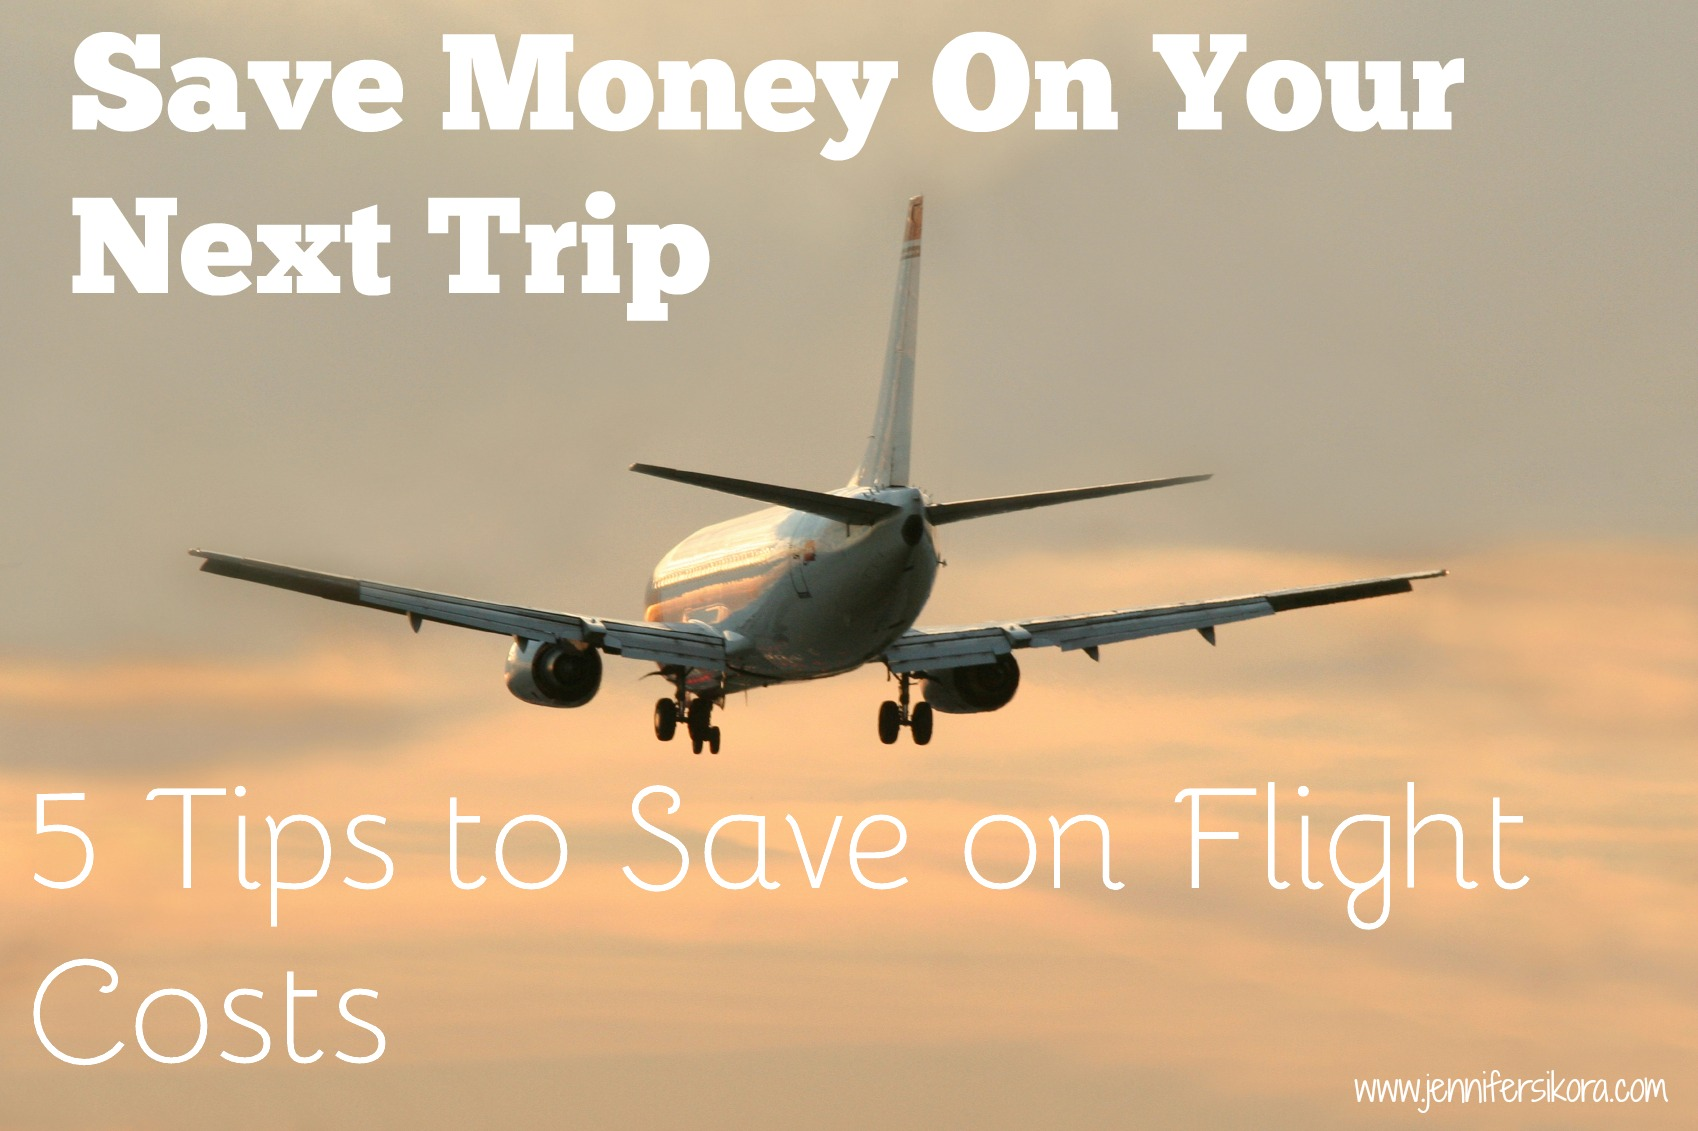 5 Tips to Save on Flight Costs